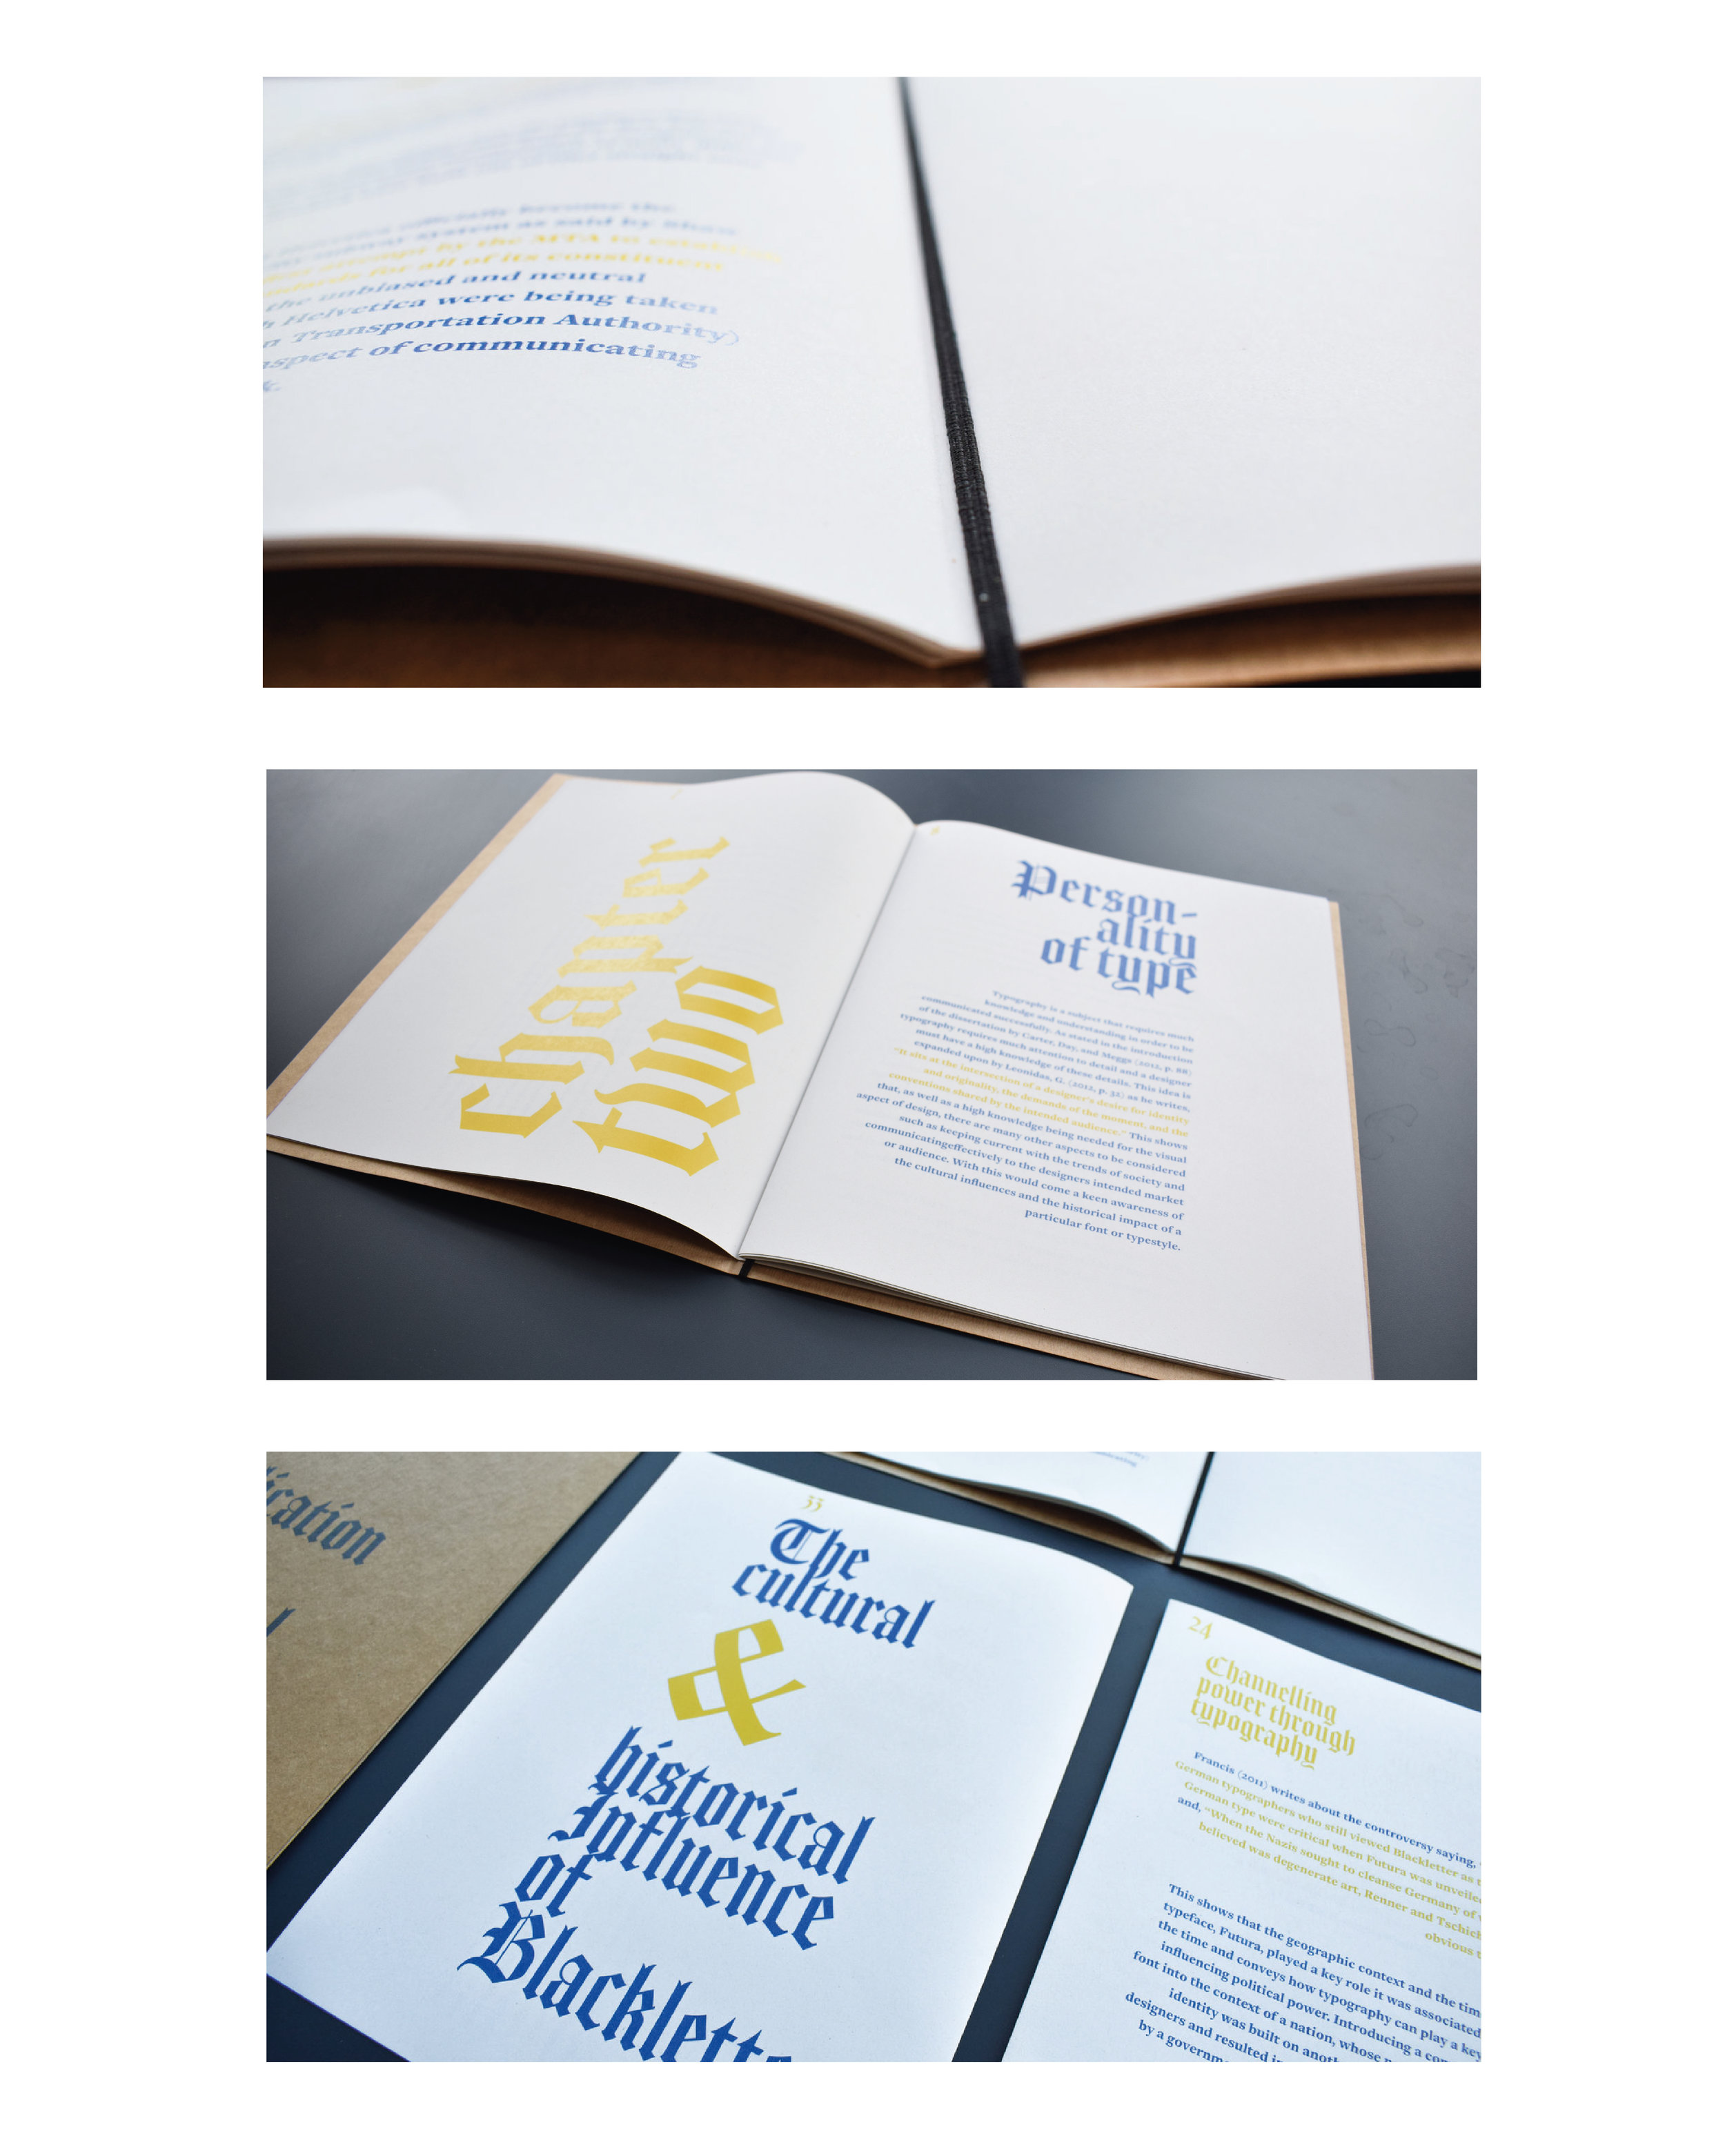 Publication Design About The Contextualisation of Typography